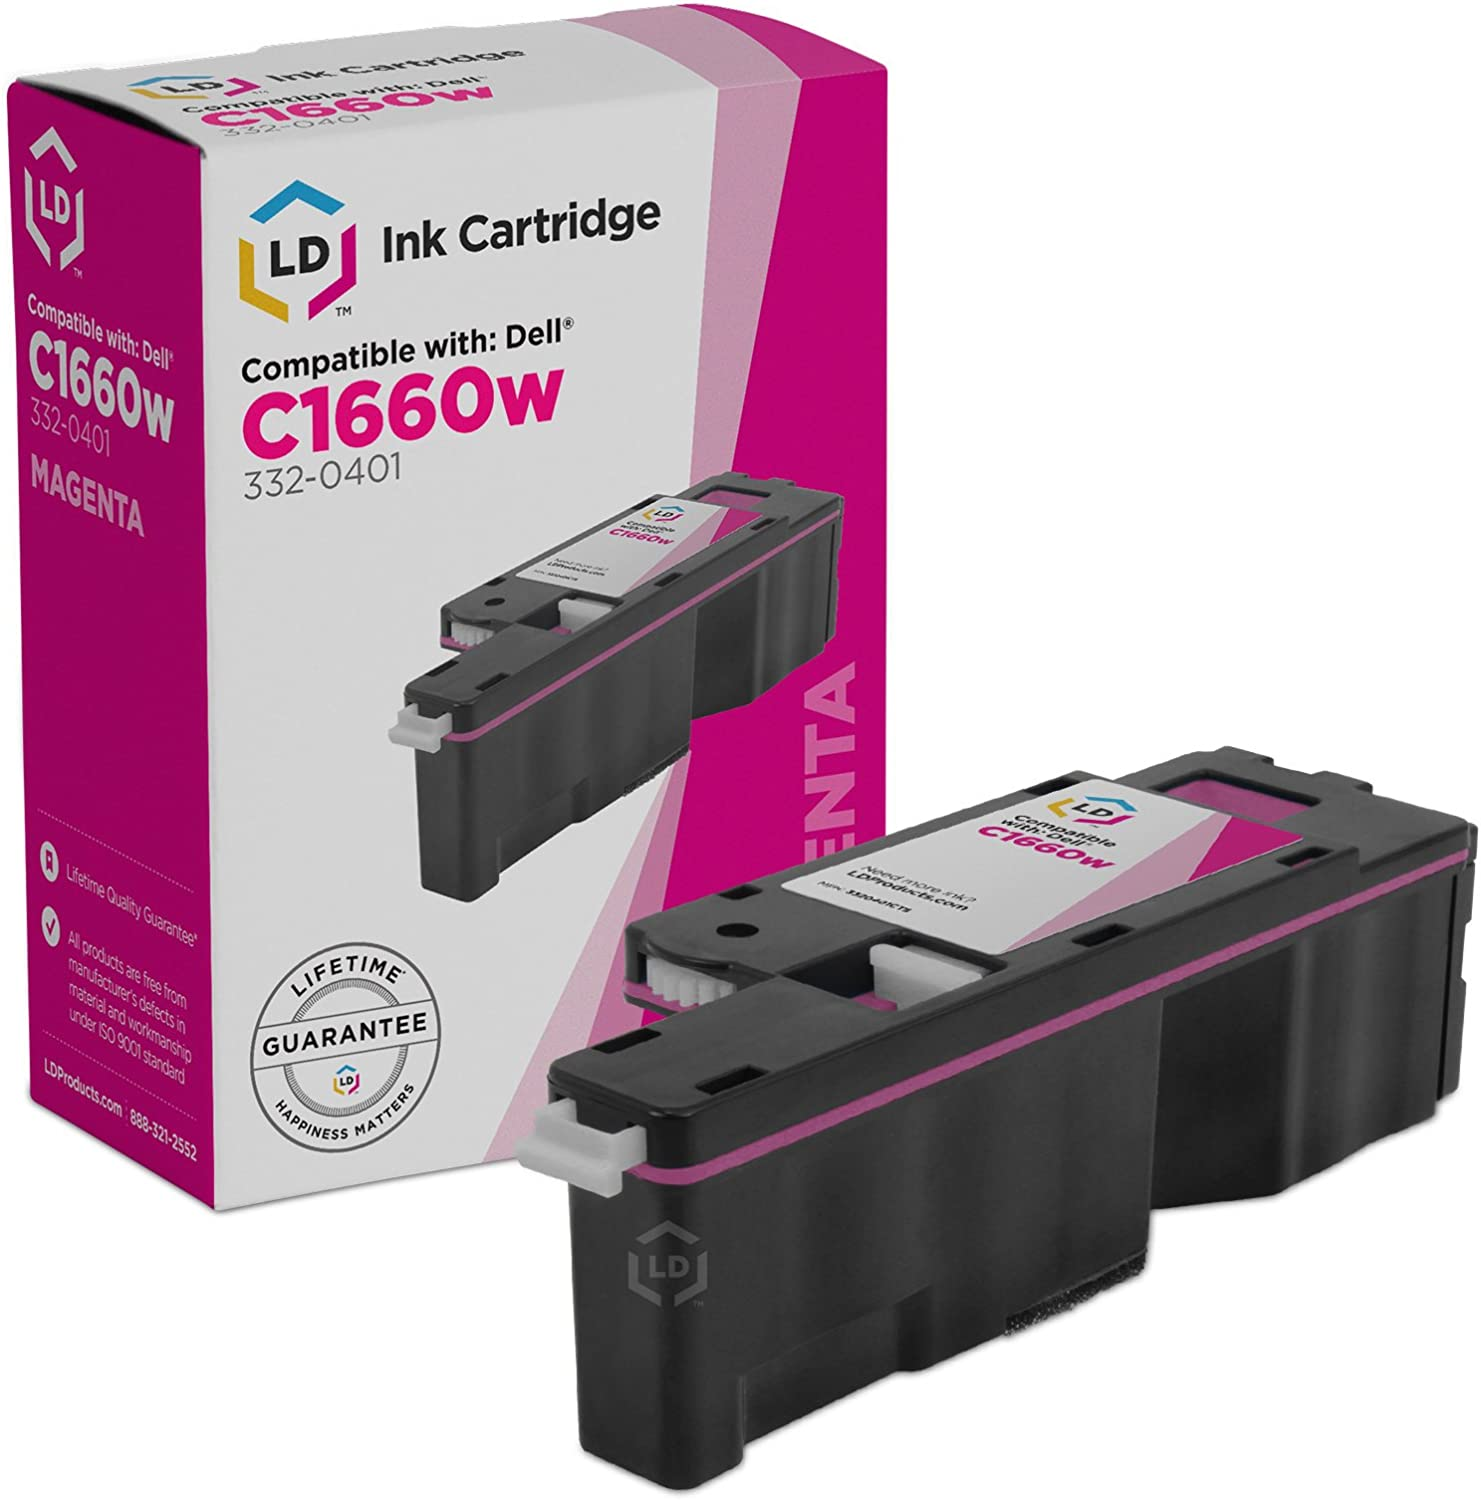 LD Compatible Replacement for Dell 332-0401 4J0X7 Magenta Toner Cartridge for use in Color Laser C1660w